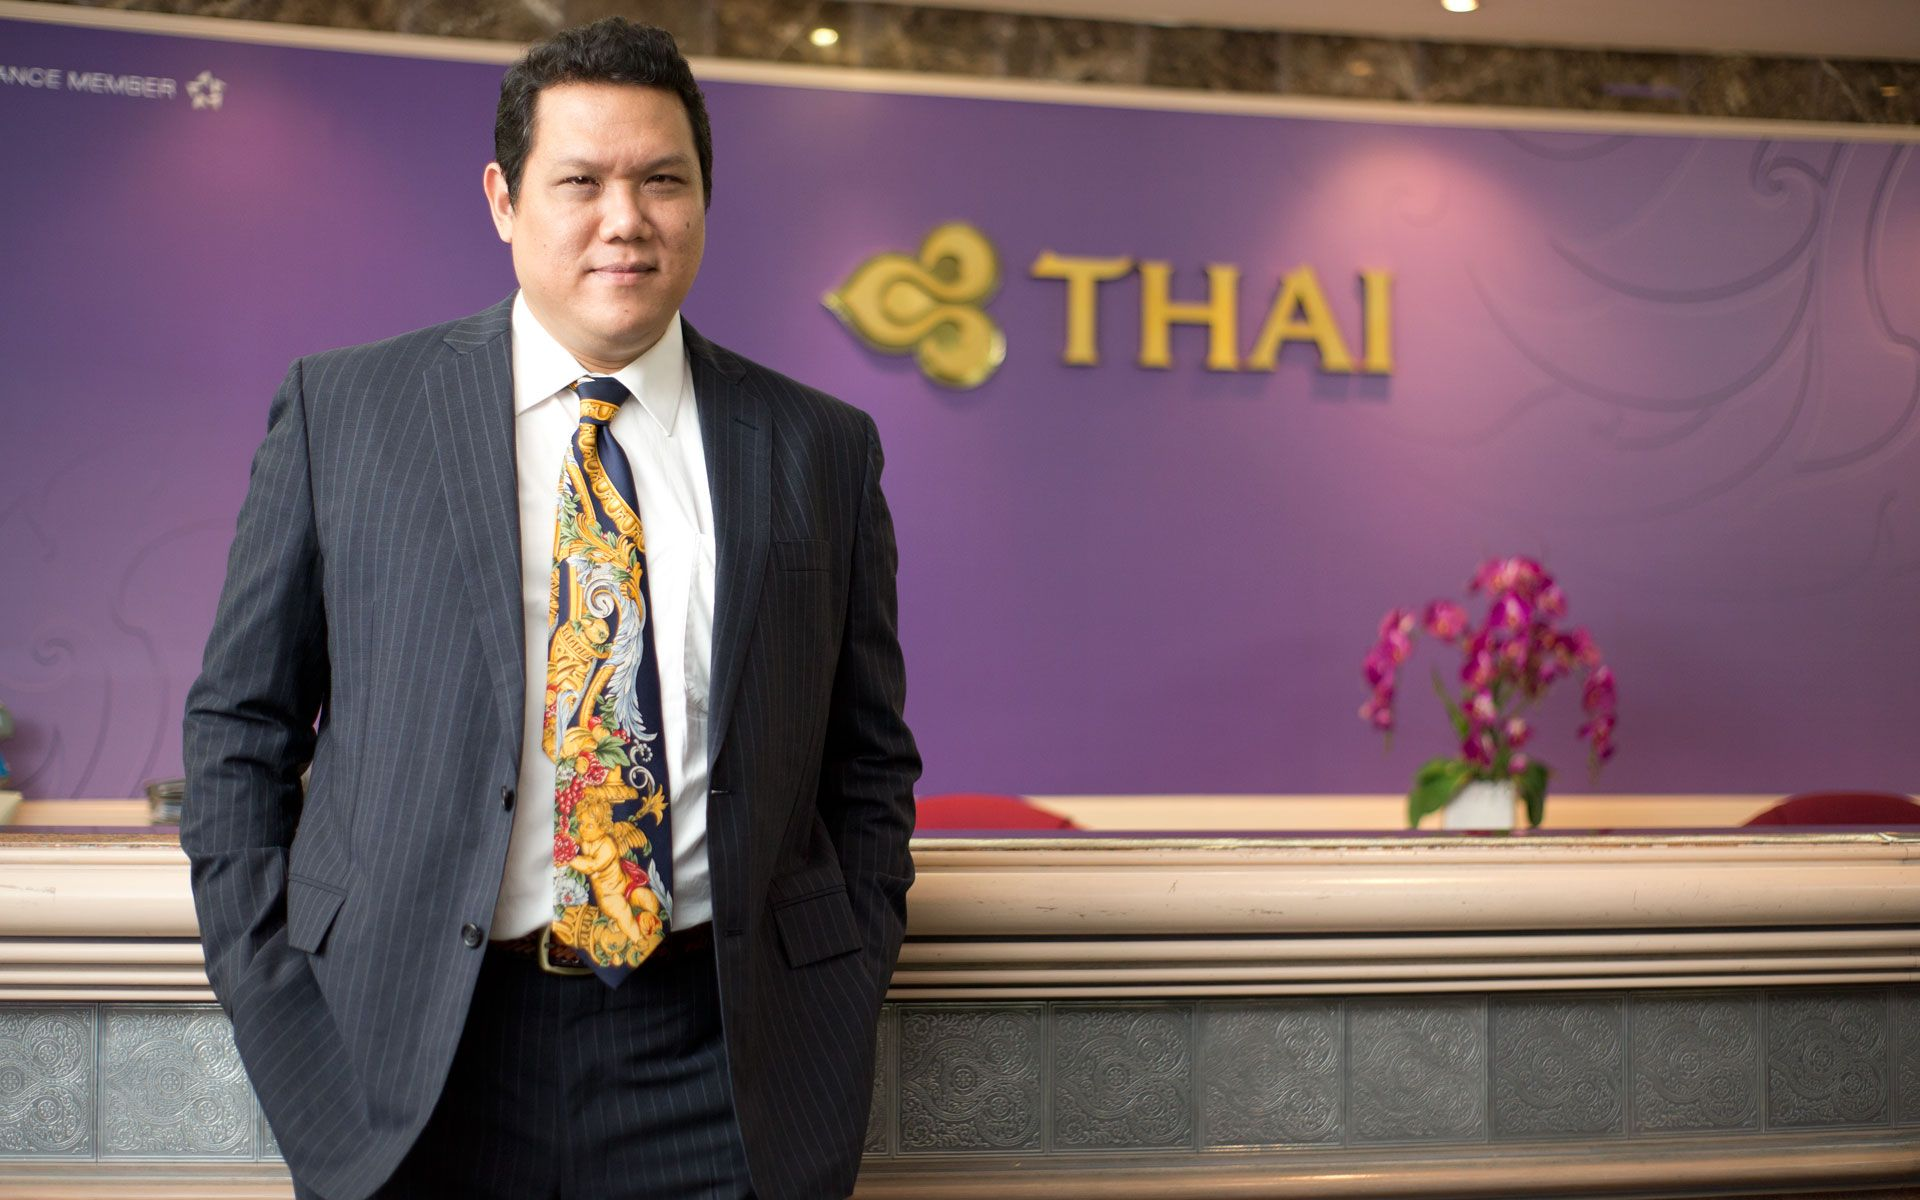 5 Top Places To See In Bangkok According To Thai Airways' General Manager